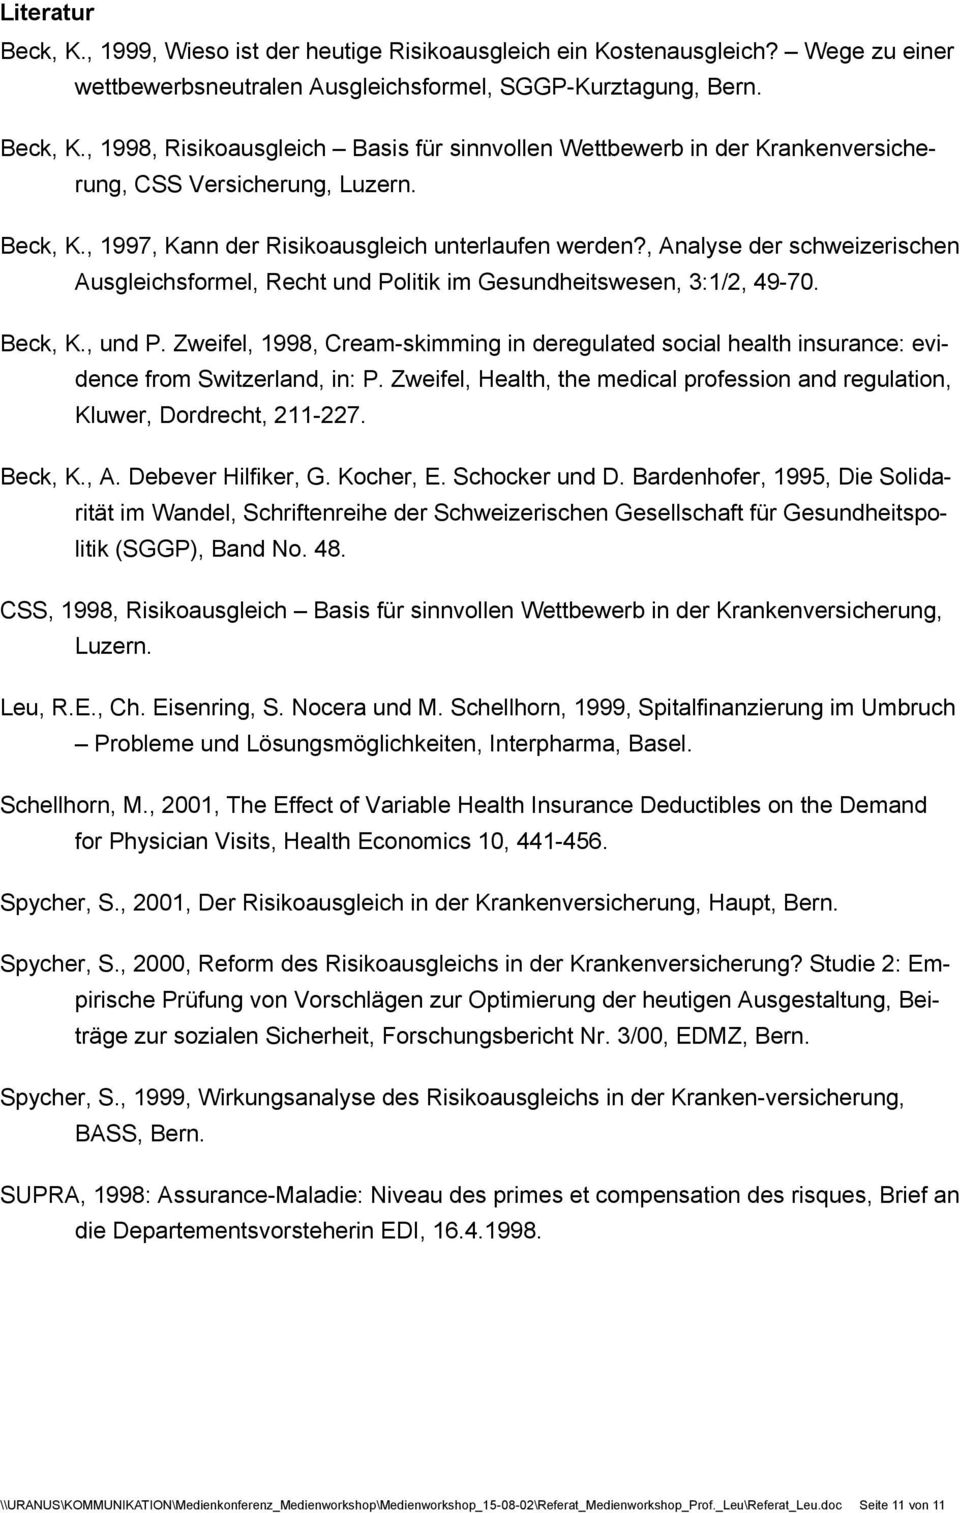 Zweifel, 1998, Cream-simming in deregulaed social healh insurance: evidence from Swizerland, in: P. Zweifel, Healh, he medical profession and regulaion, Kluwer, Dordrech, 211-227. Bec, K., A.